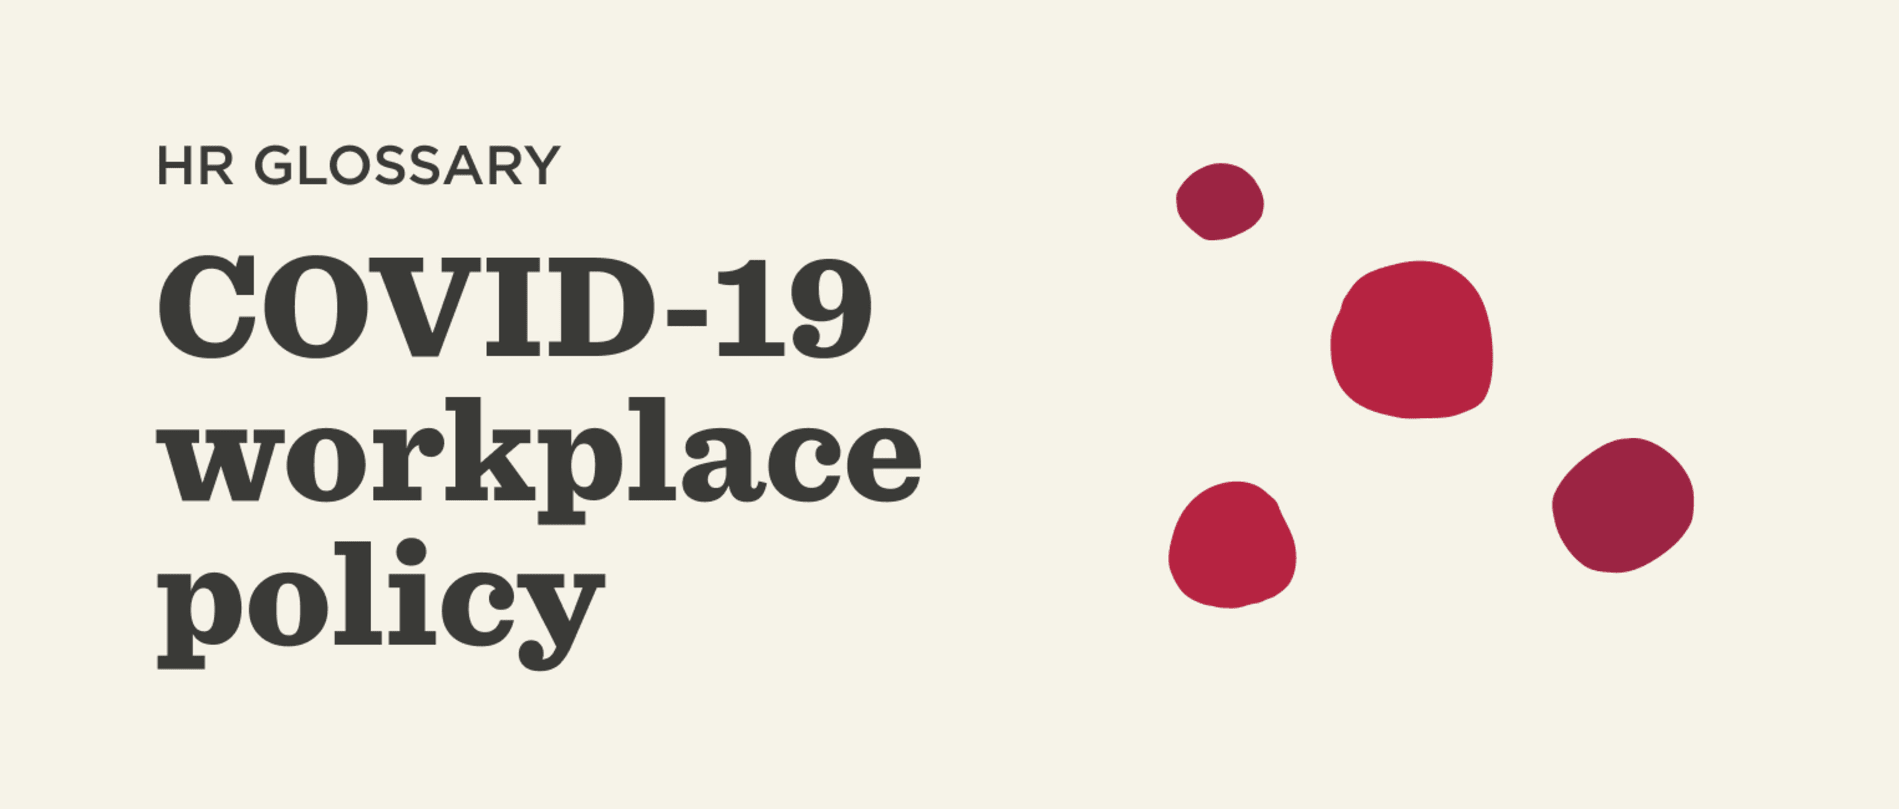 COVID-19 workplace policy